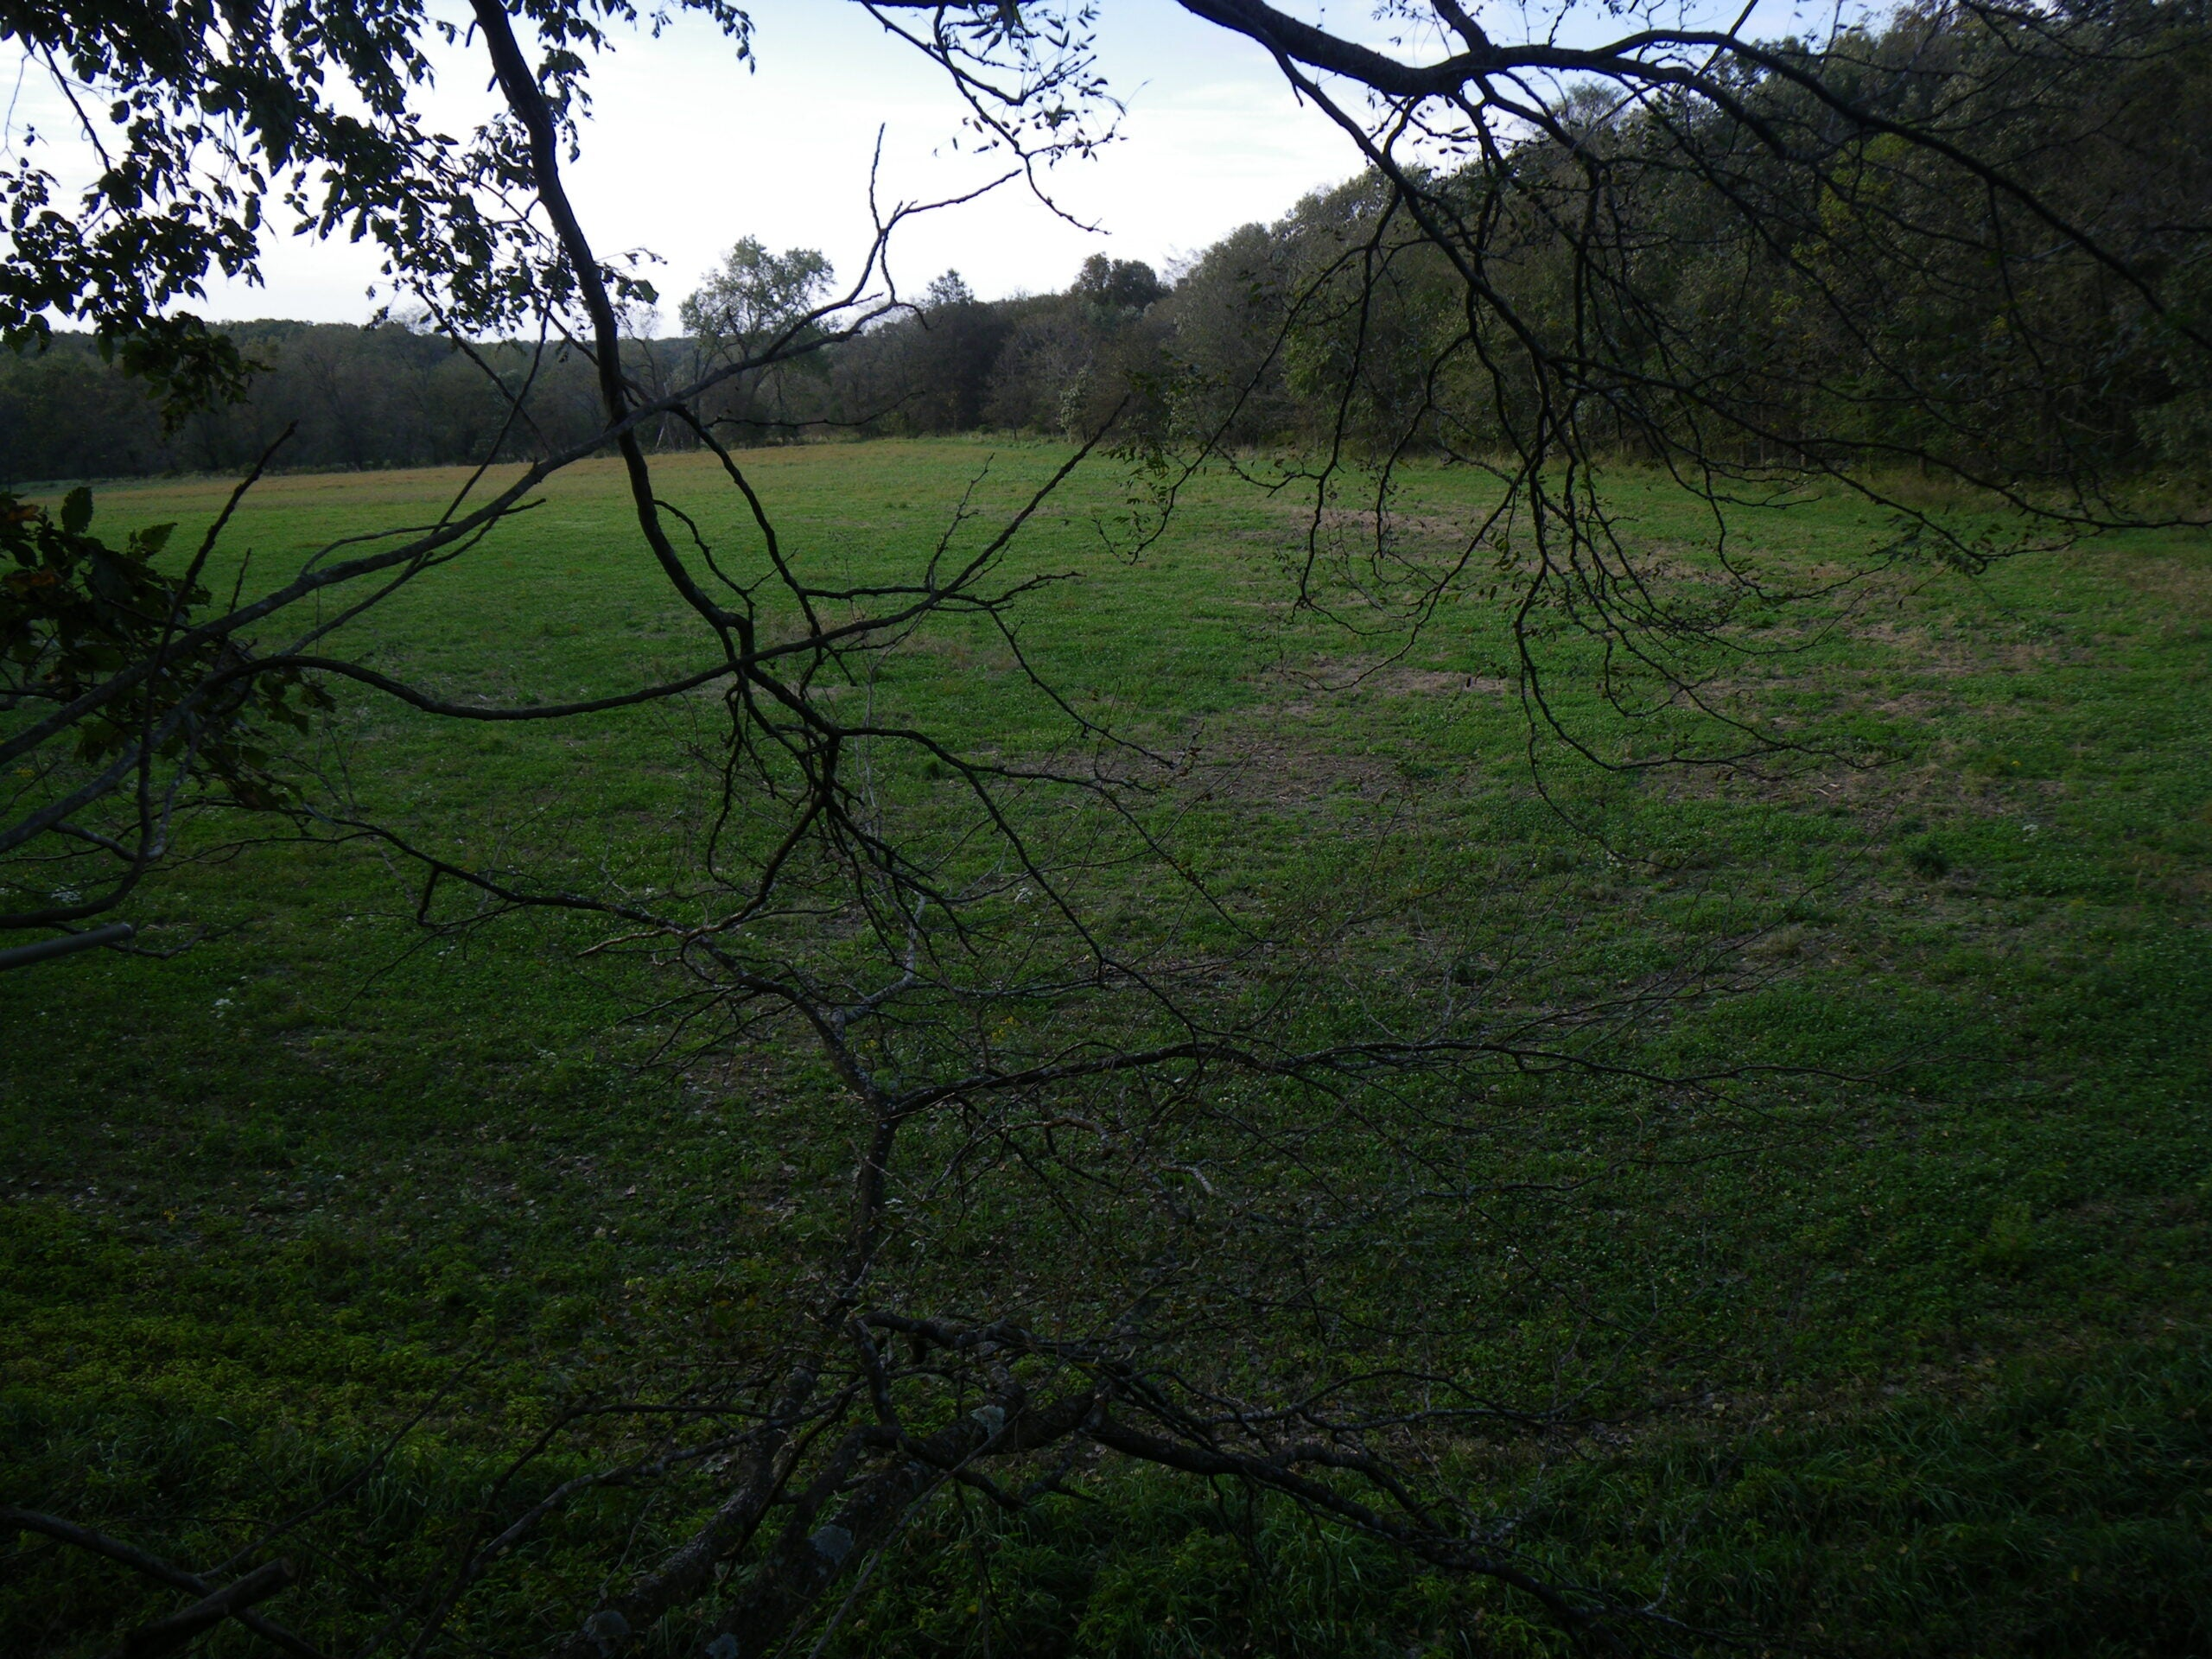 View From a Deerstand